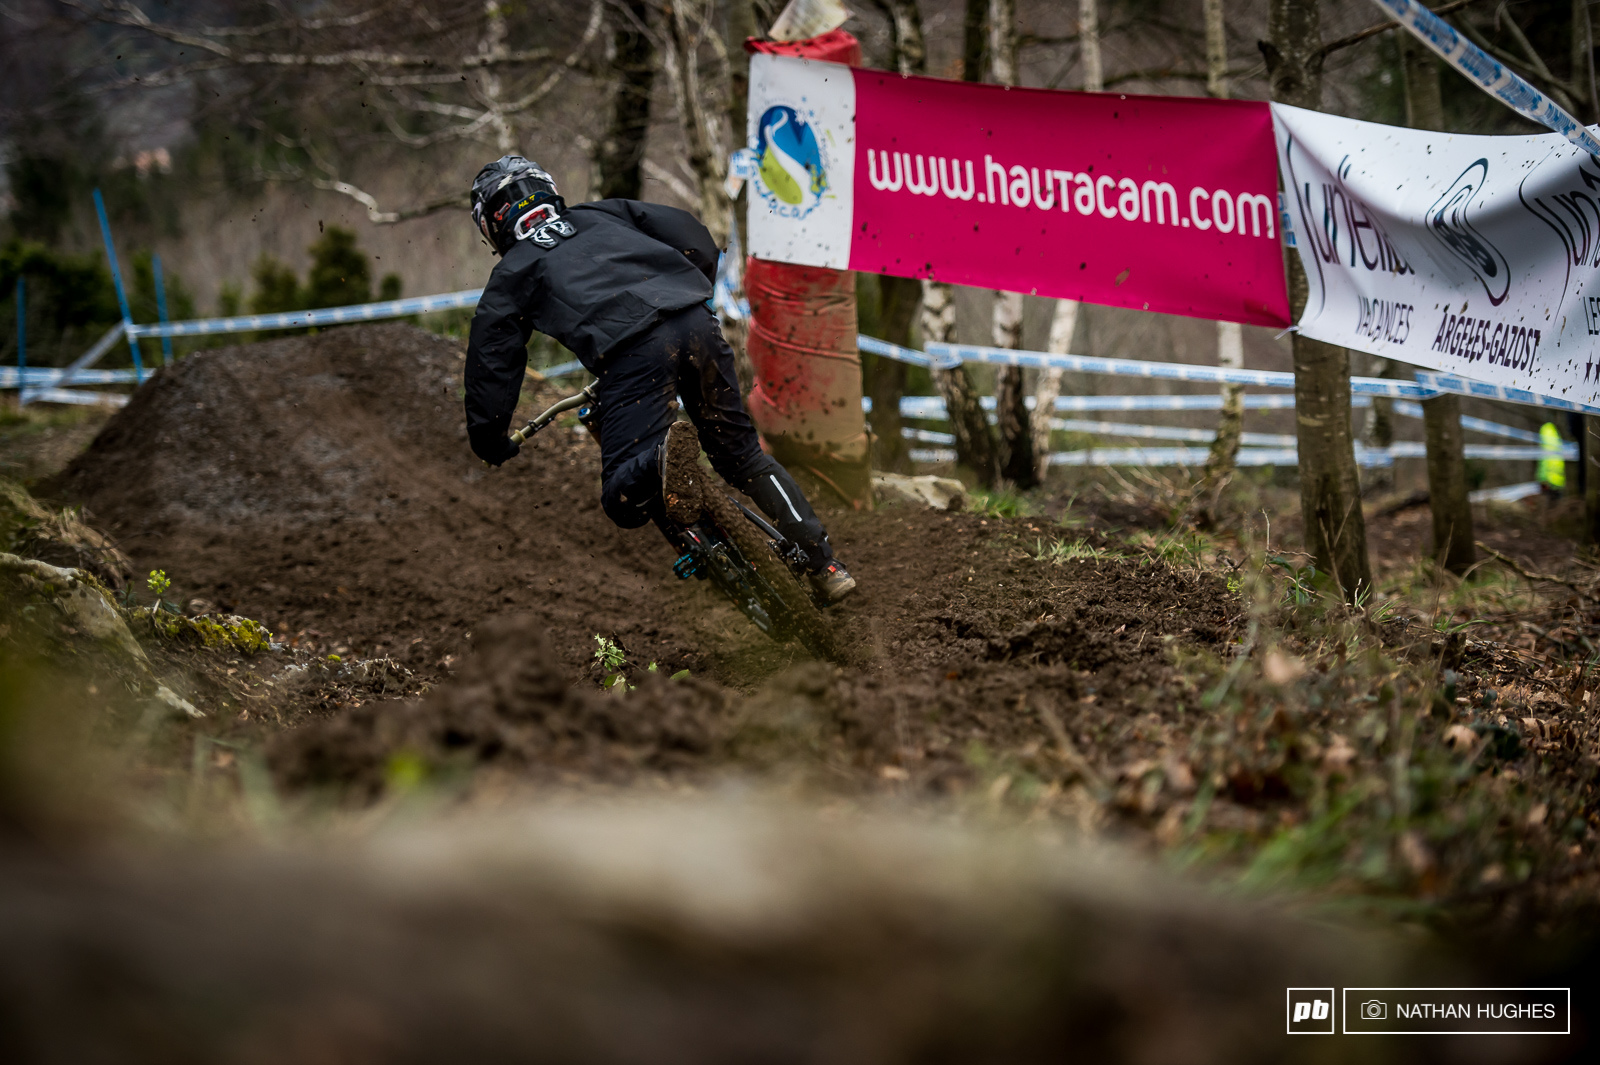 The track was running super slow and sticky making it mighty difficult to carry speed from section to section. There were big names riding a tamer than usual some almost creeping by unoticed under their blacked-out mud gear.